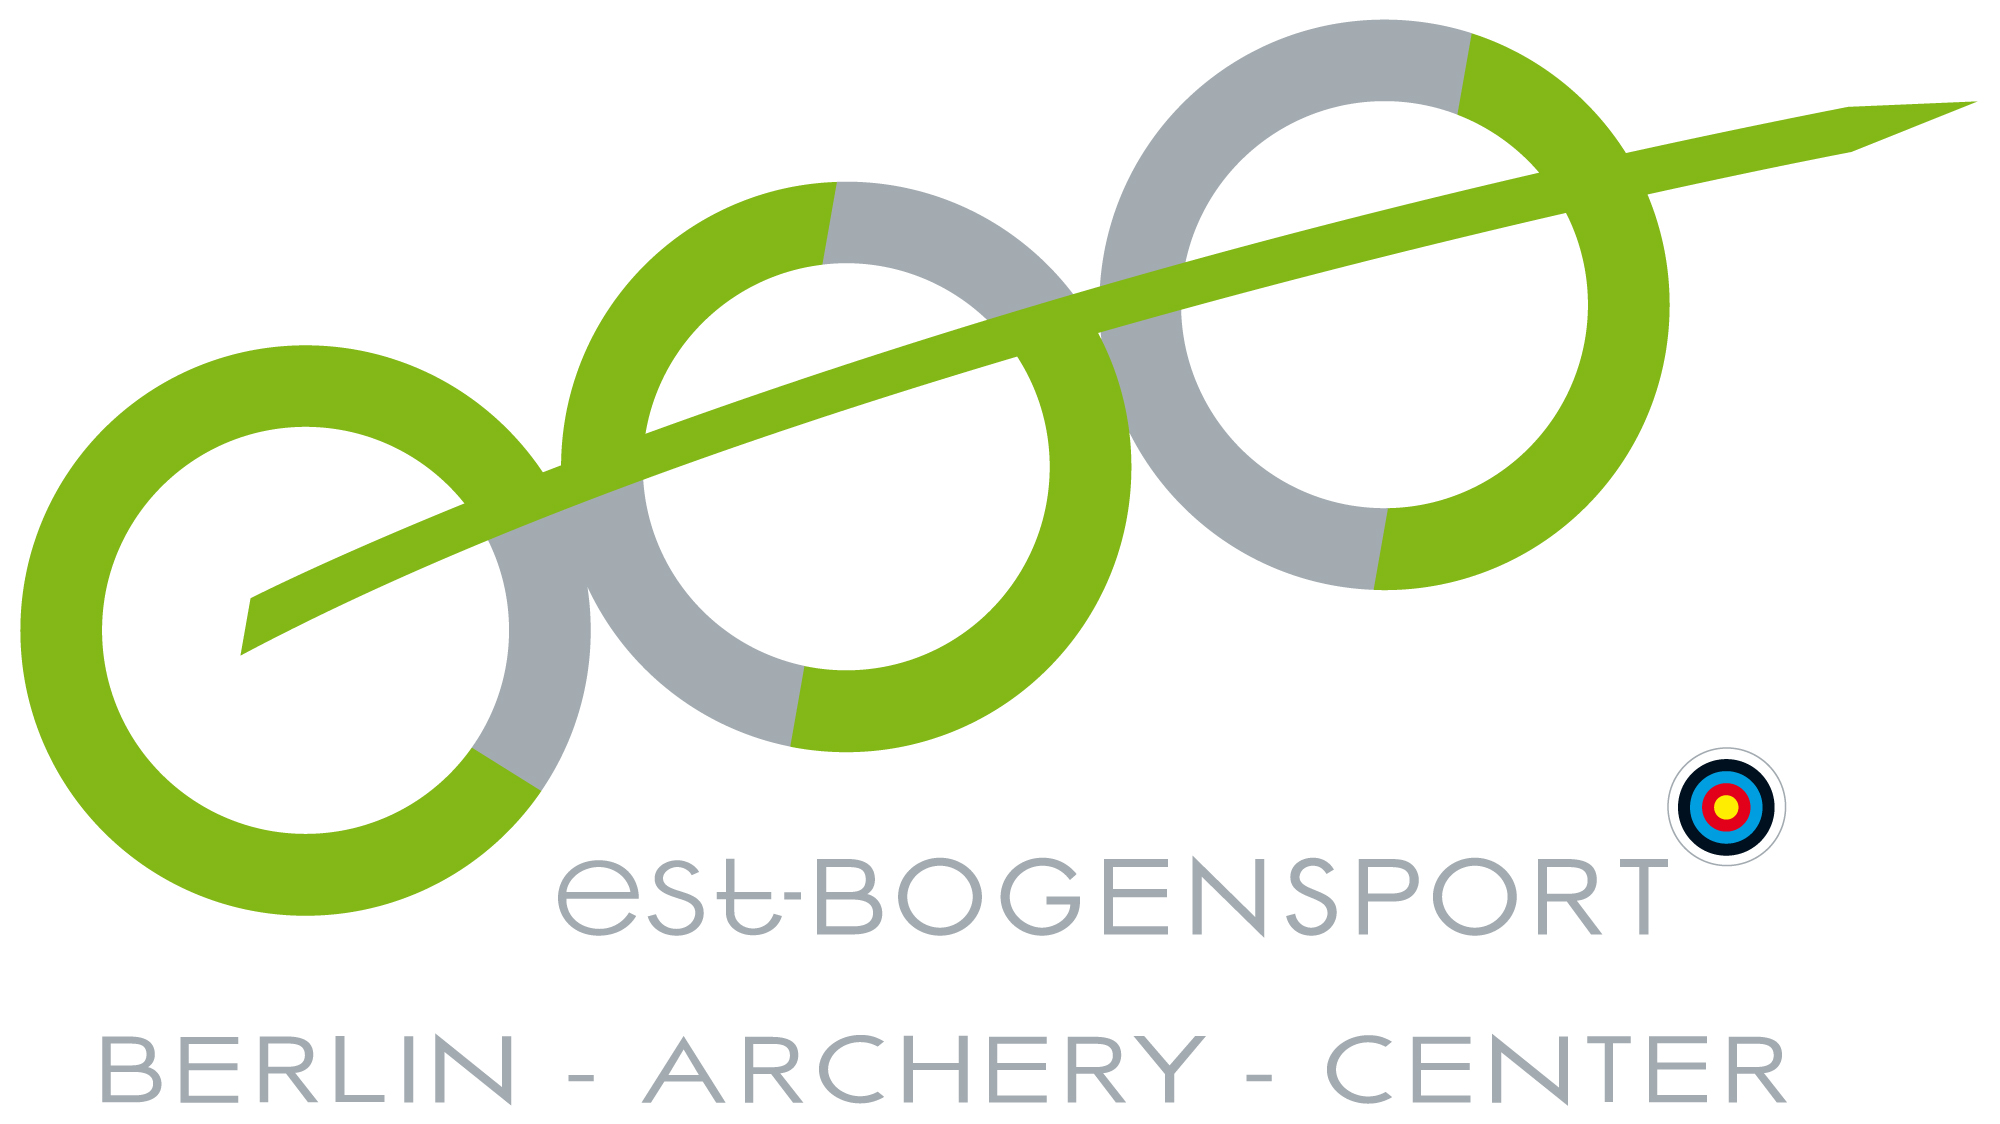 Firmenlogo est.Bogensport- Archery - Center in Berlin - AF&H Kooperationspartner